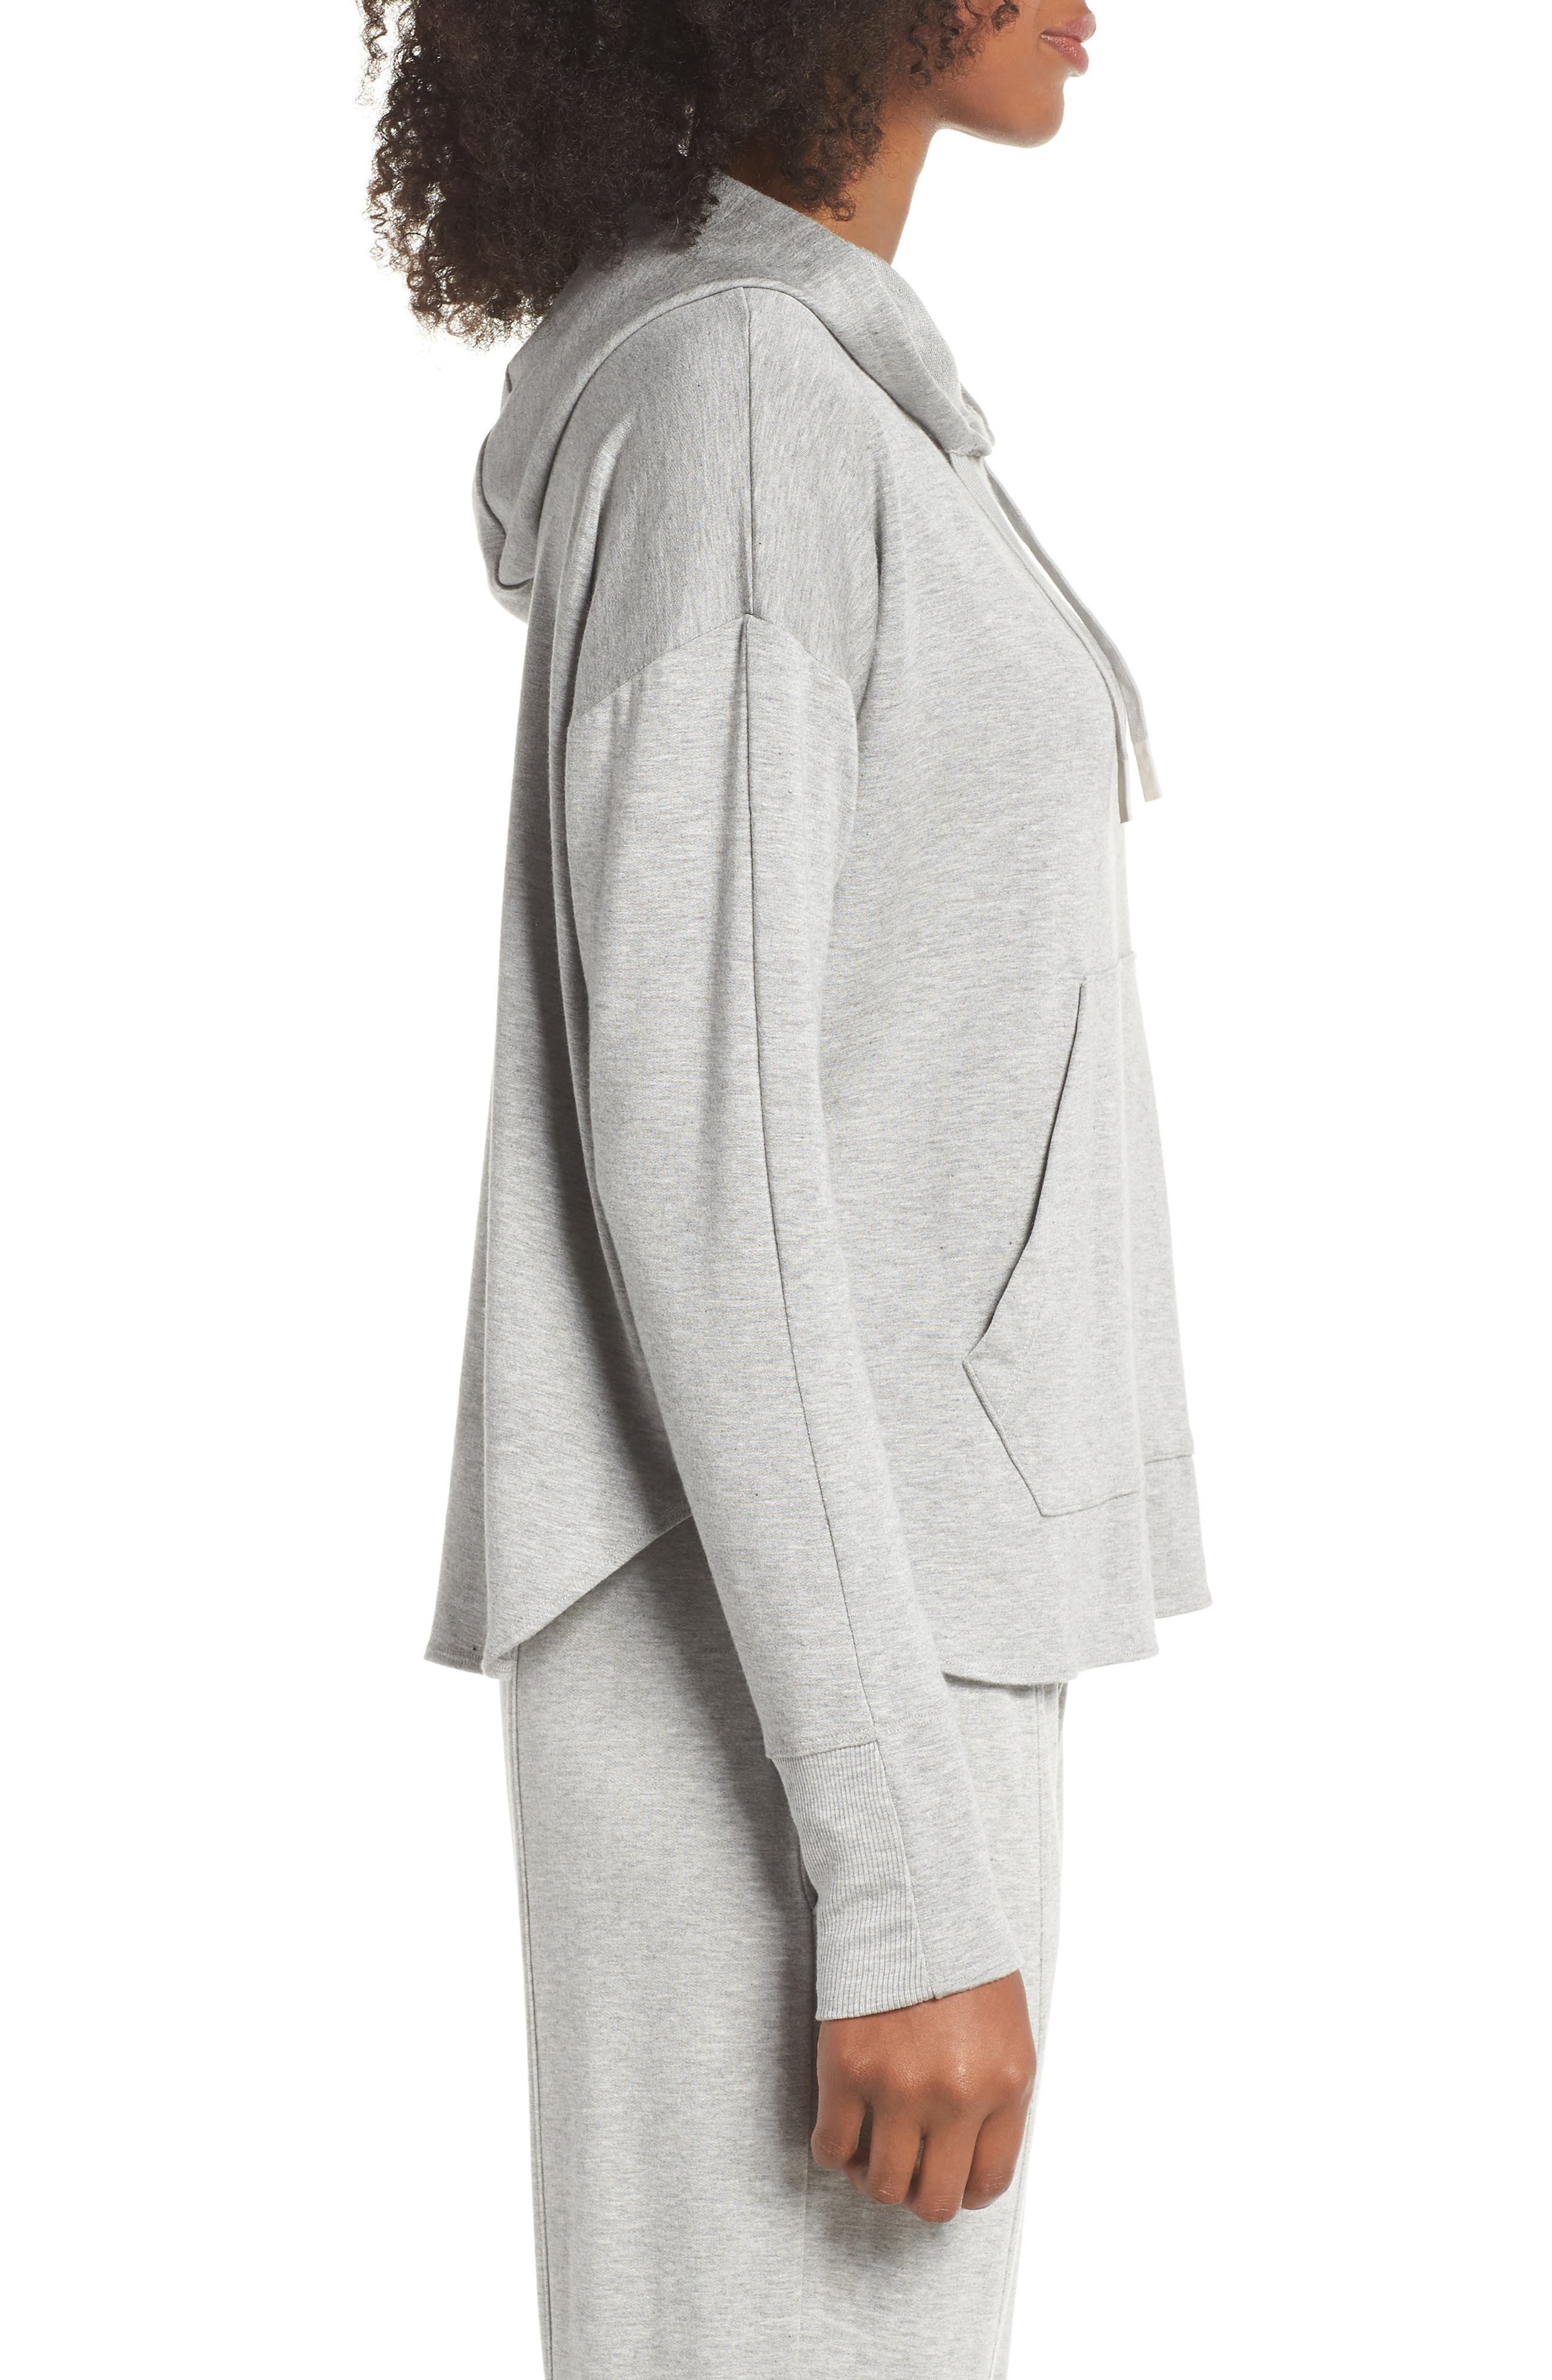 Pacific Hoodie,                             Alternate thumbnail 3, color,                             LIGHT HEATHER GREY